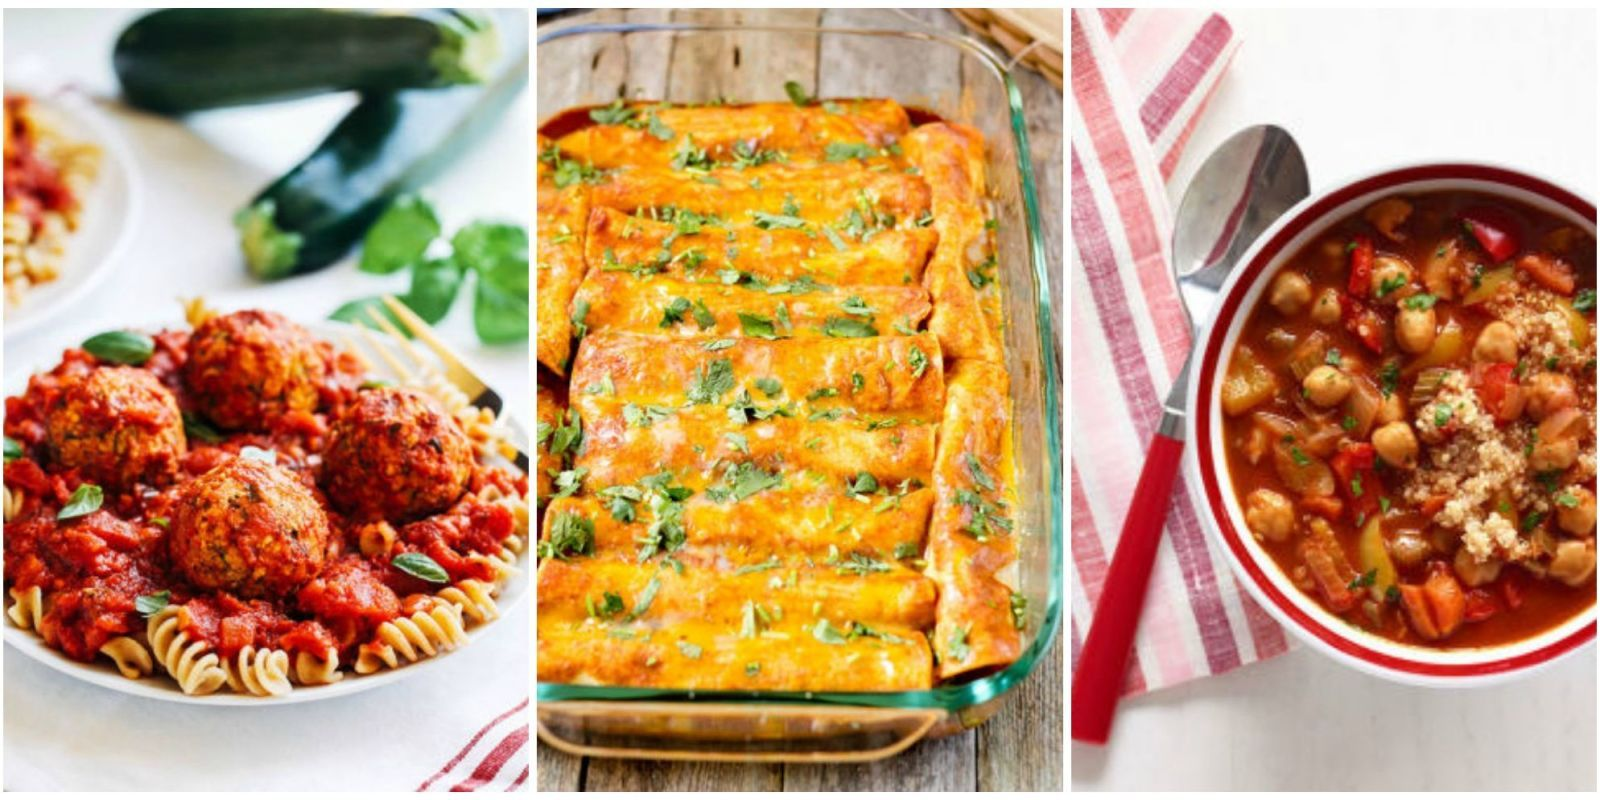 Mustering the strength to cook dinner during the week can be a monumental task but these vegan recipes are super quick and straightforward to make (and ... & 10 Easy Vegan Dinner Recipes - Best Vegan Meal Ideas